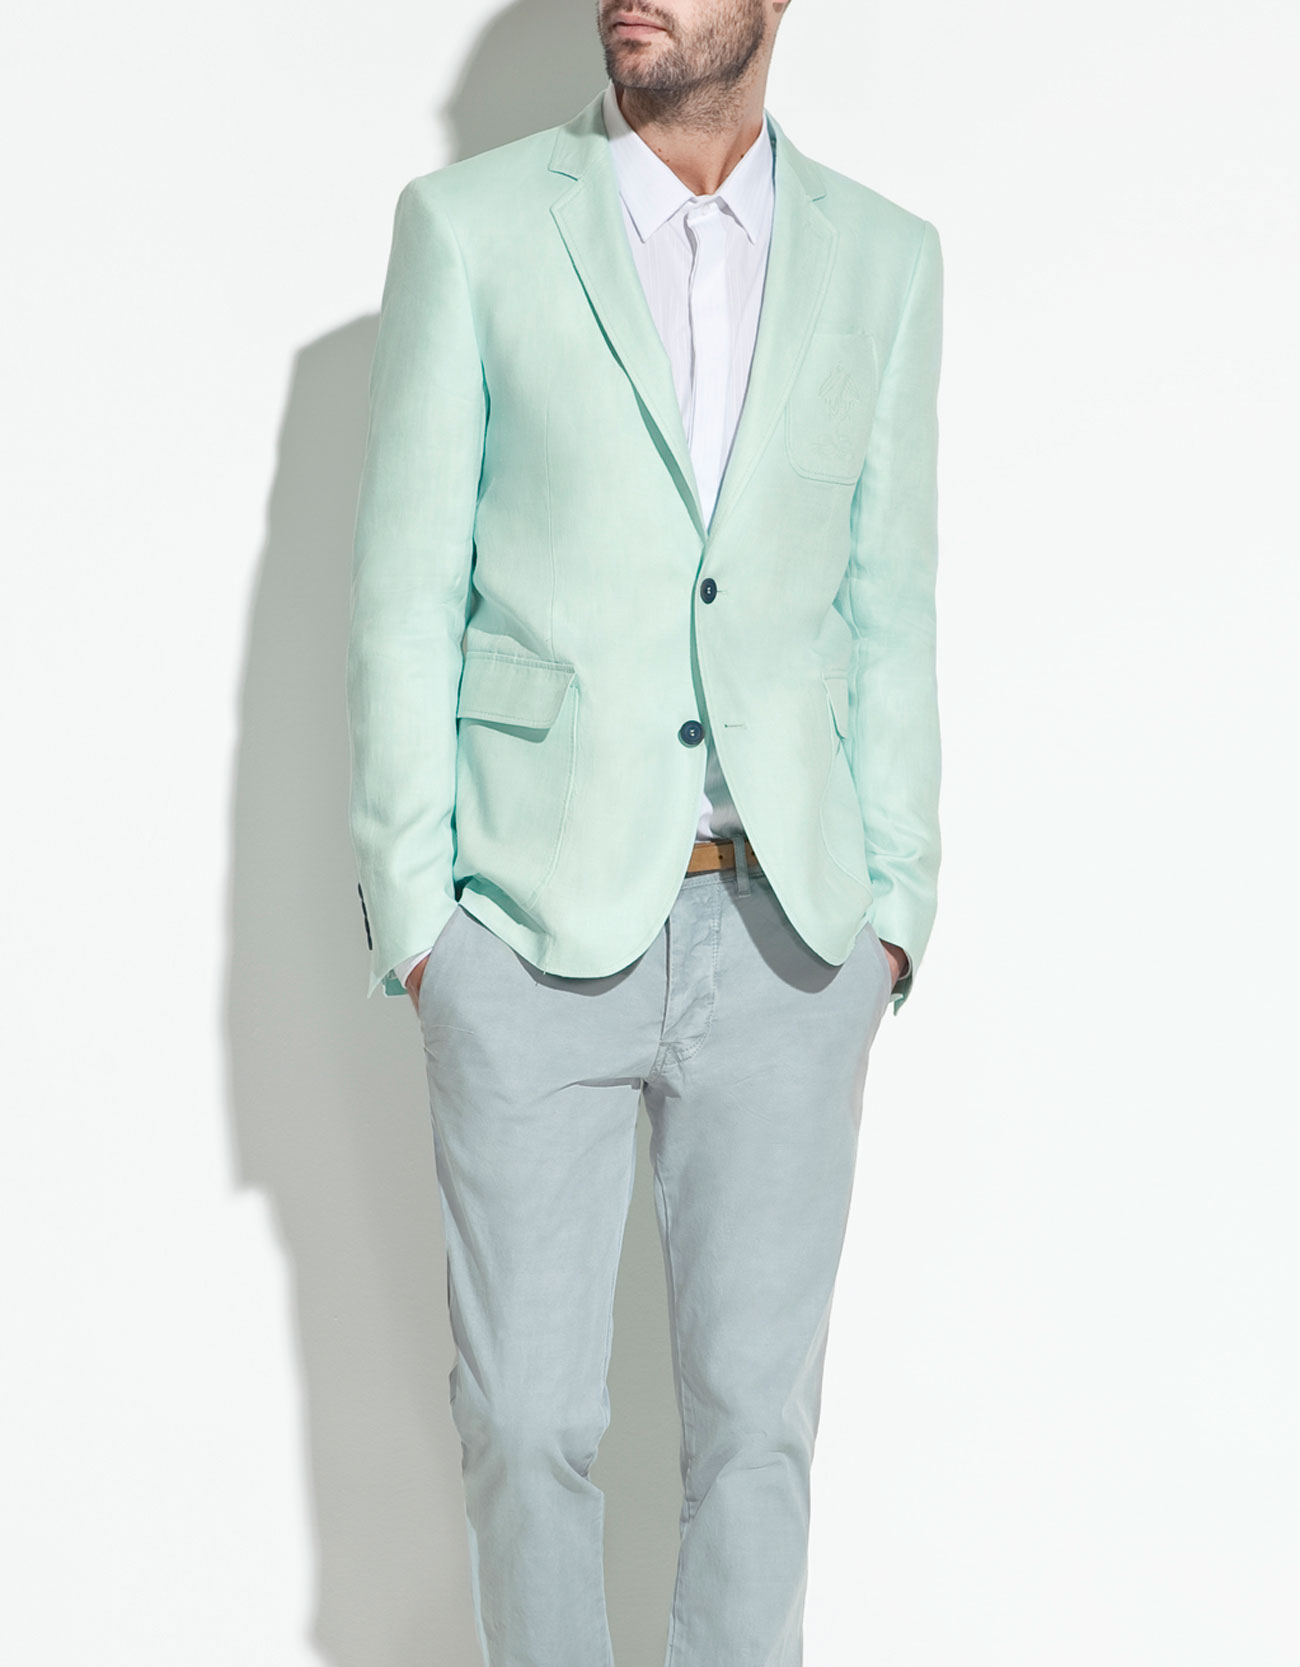 zara-blue-linen-blazer-with-detailing_thecolorharmony